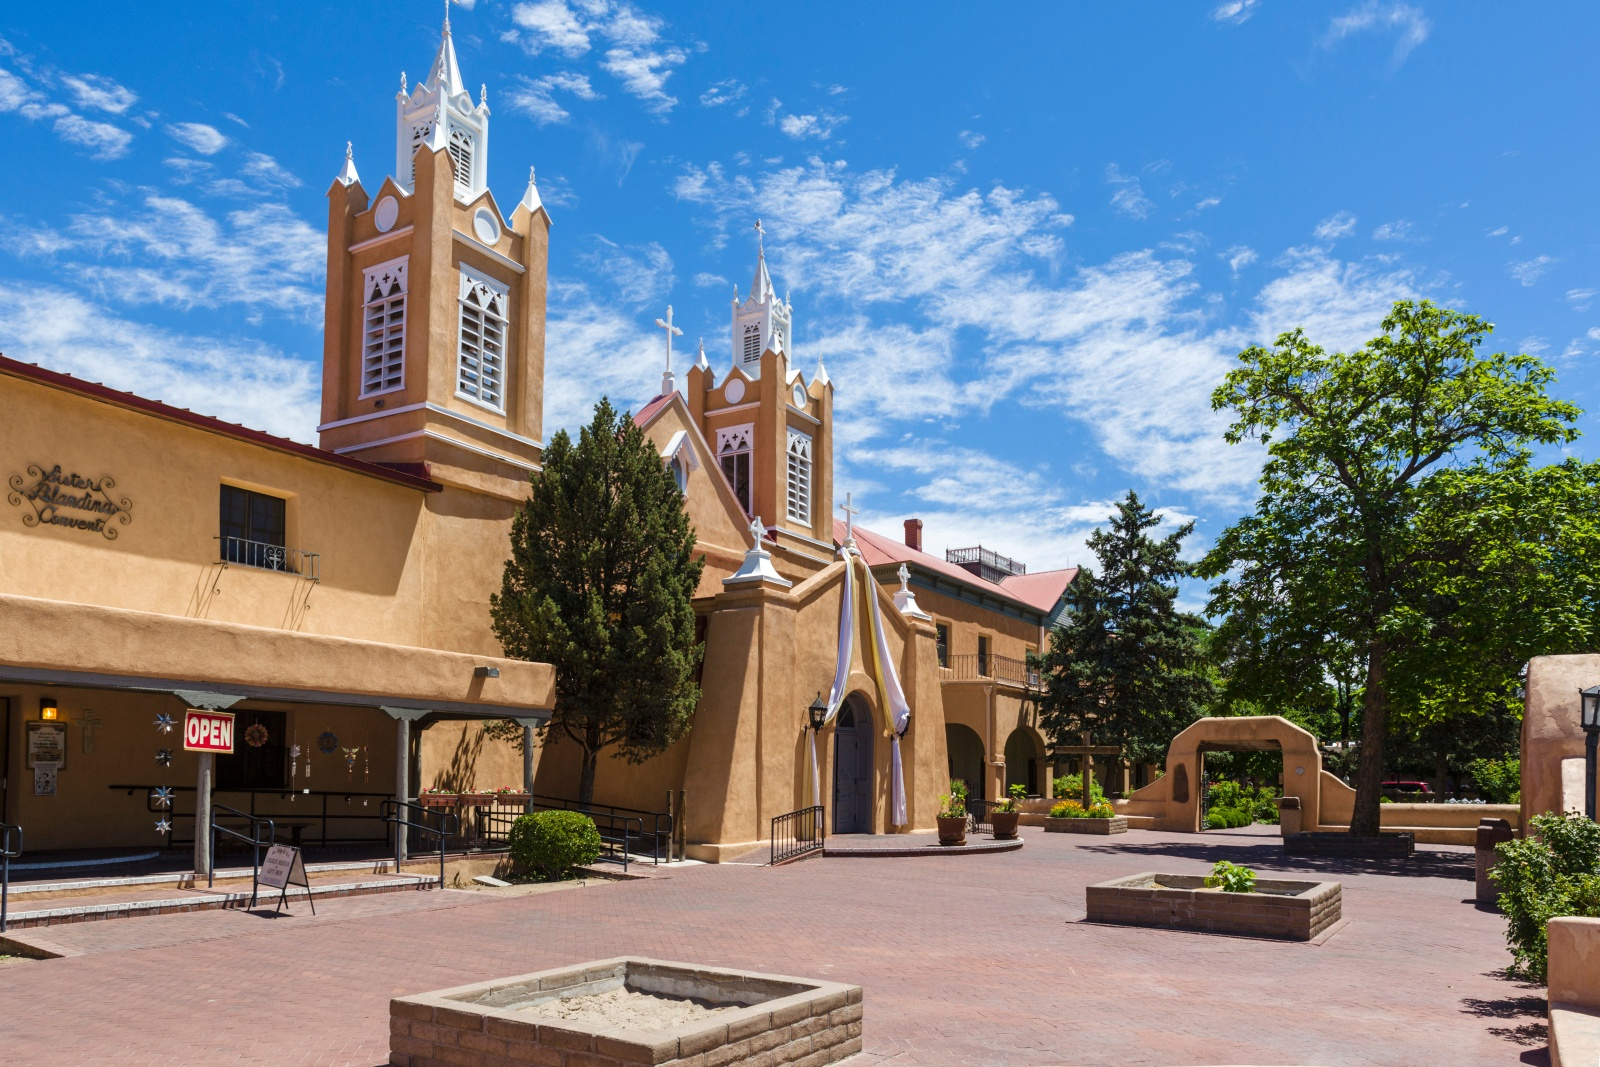 San Felipe de Neri Church in Albuquerque, New Mexico